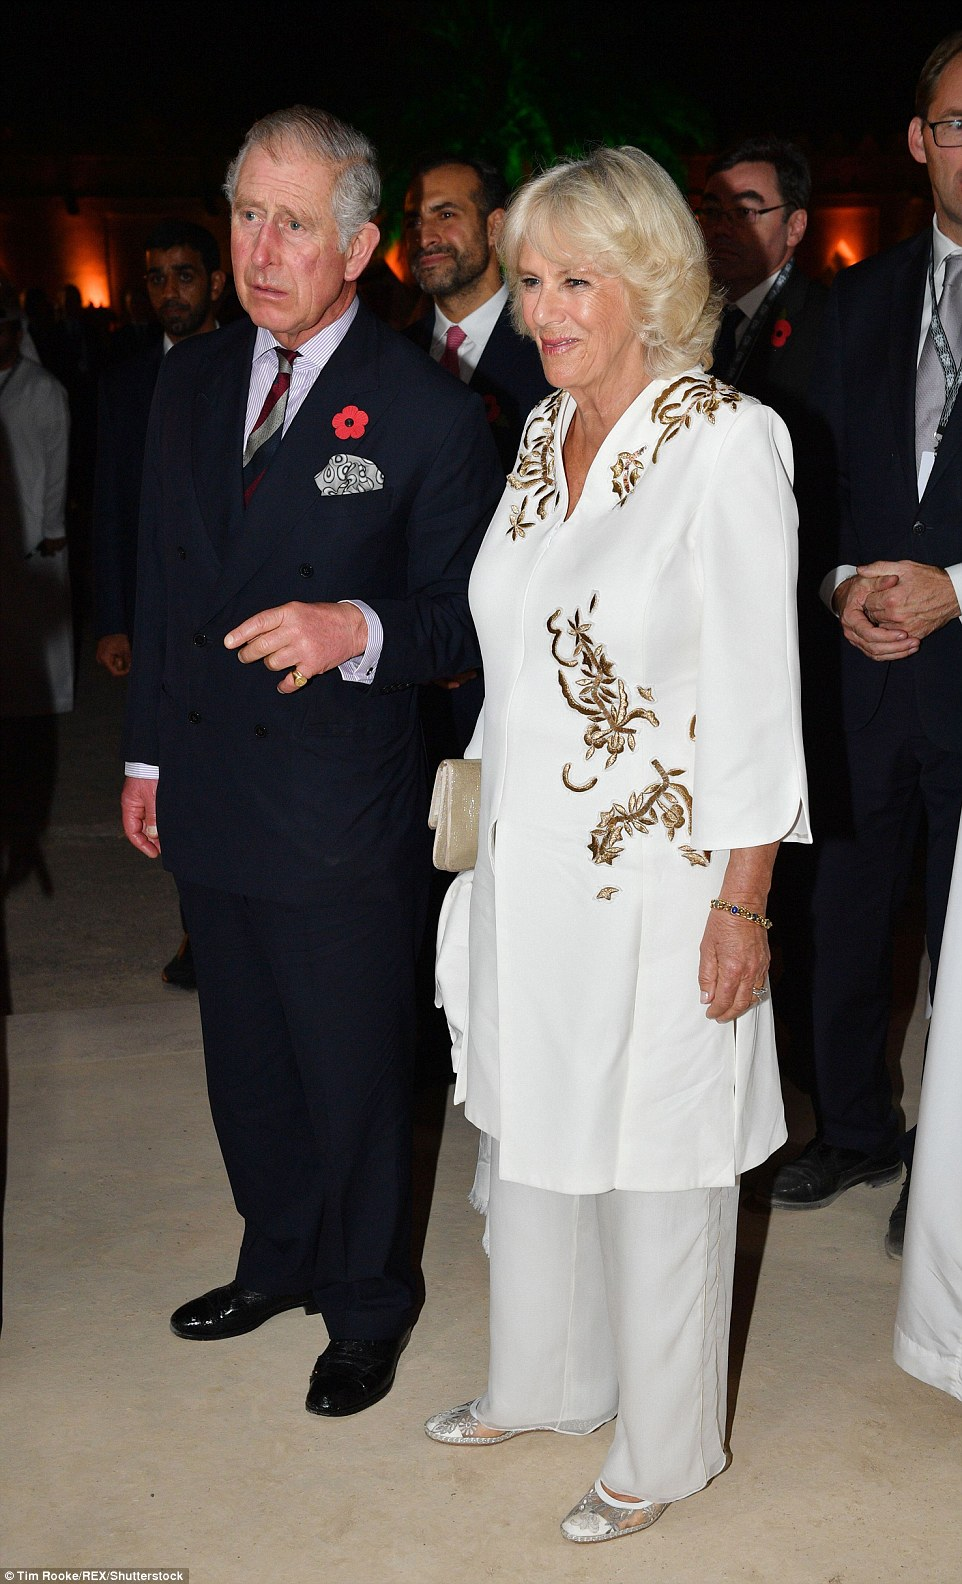 Night on the town! Despite their hectic schedule Prince Charles and Camillaappeared to be full of energy as they attended a glittering event on in Abu Dhabi Monday night